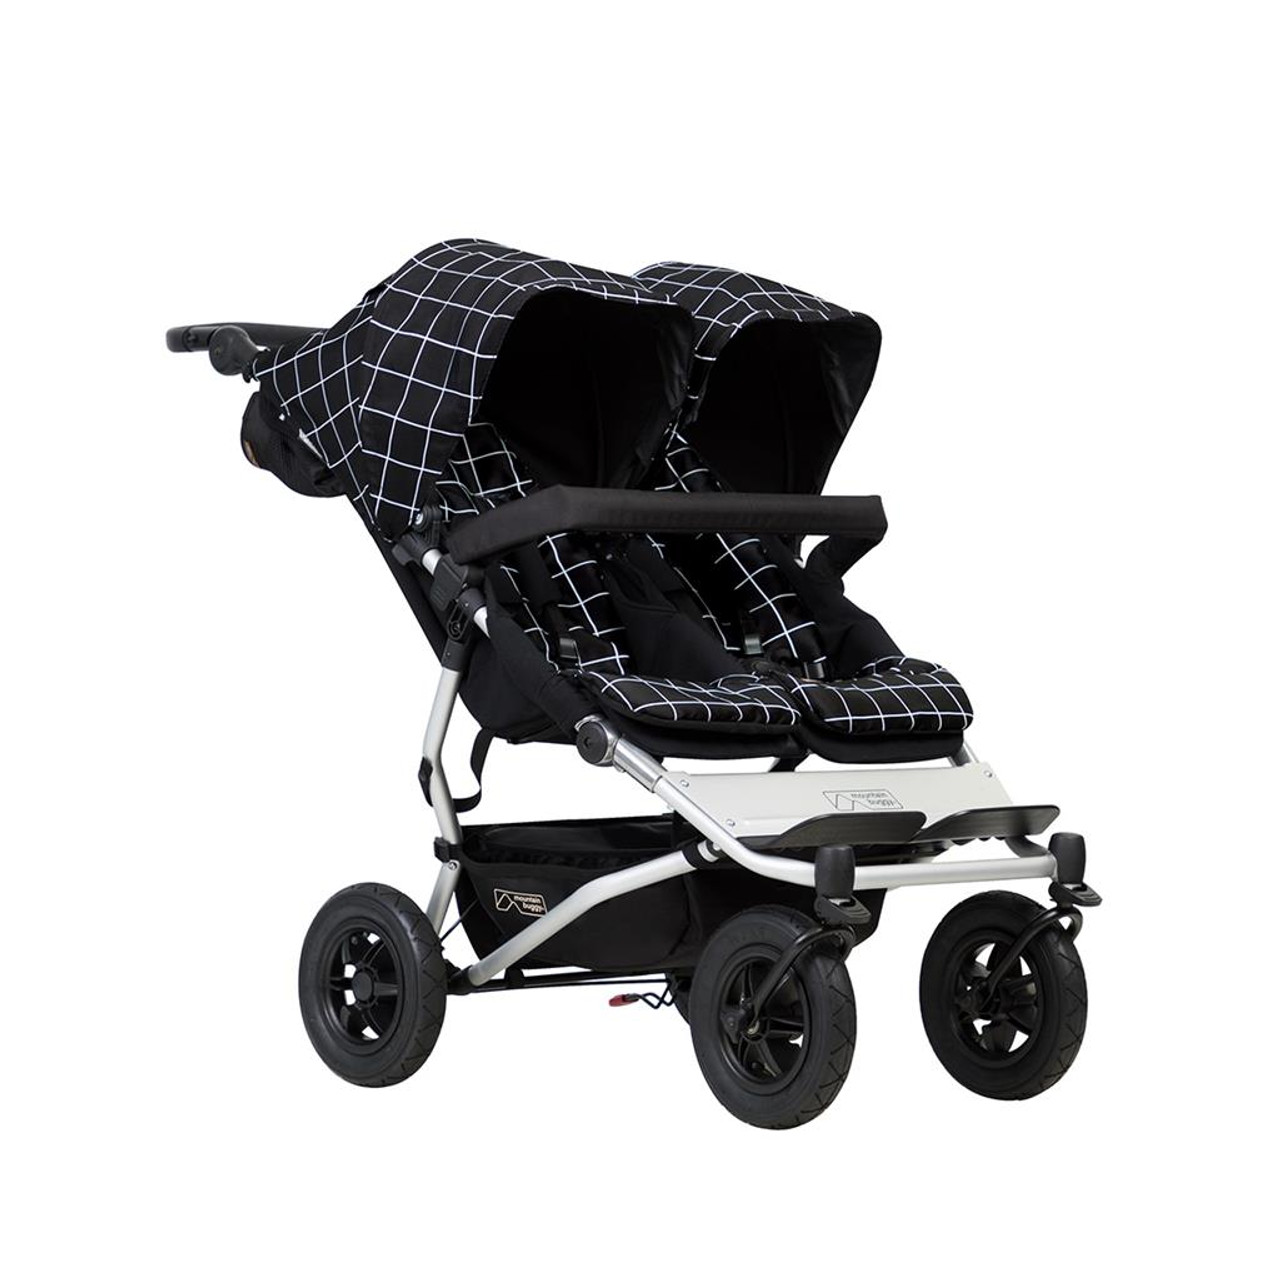 Mountain Buggy Duet V3.2 GRID at Baby Barn Discounts Mountain Buggy Duet 2020 version double pram with polyester fabric.